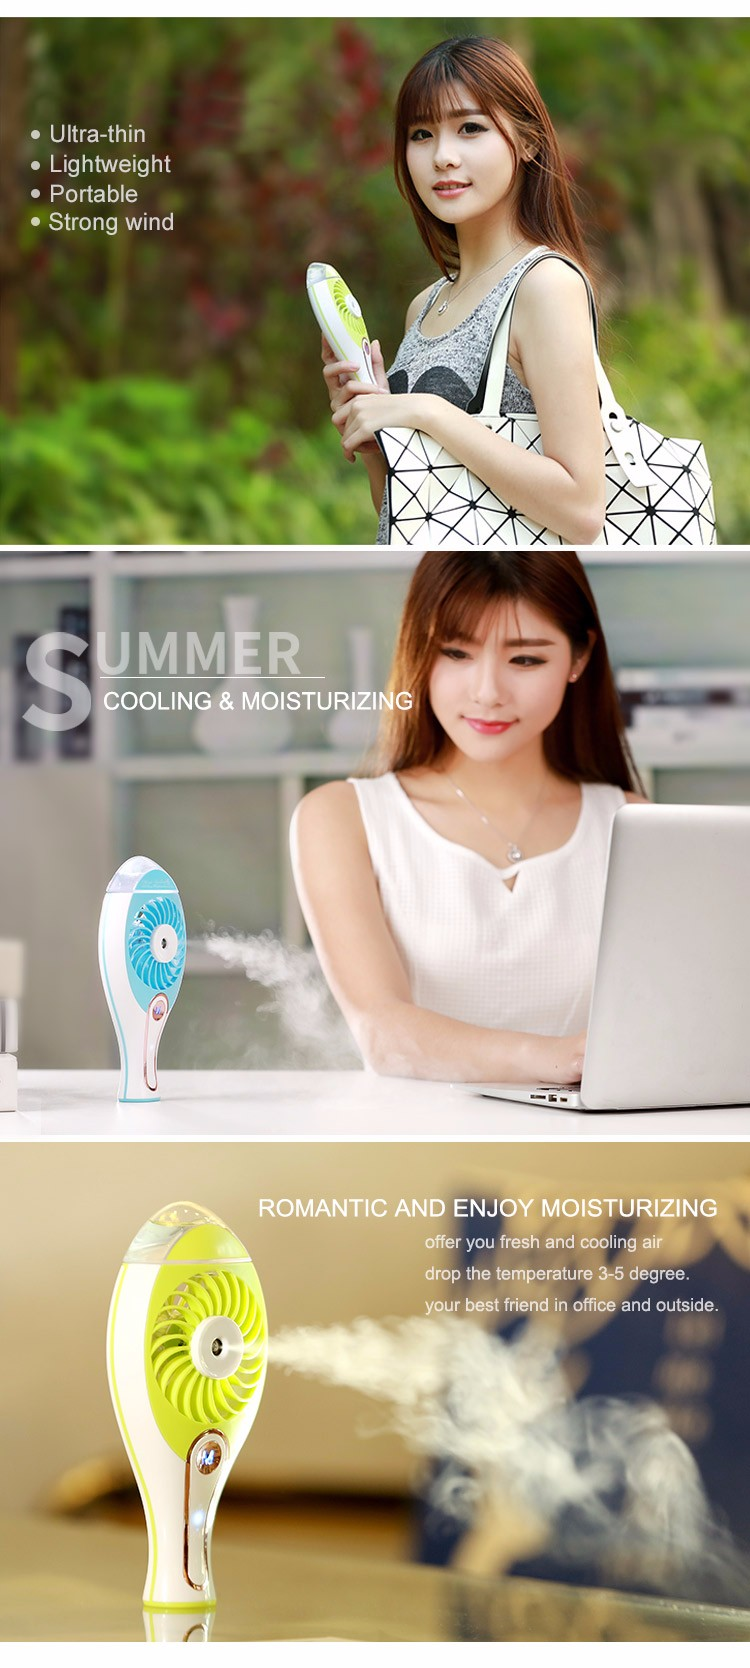 shenzhen battery powered office personal single room cool mist air cooler fan humidifier fan for face mini and air purifier